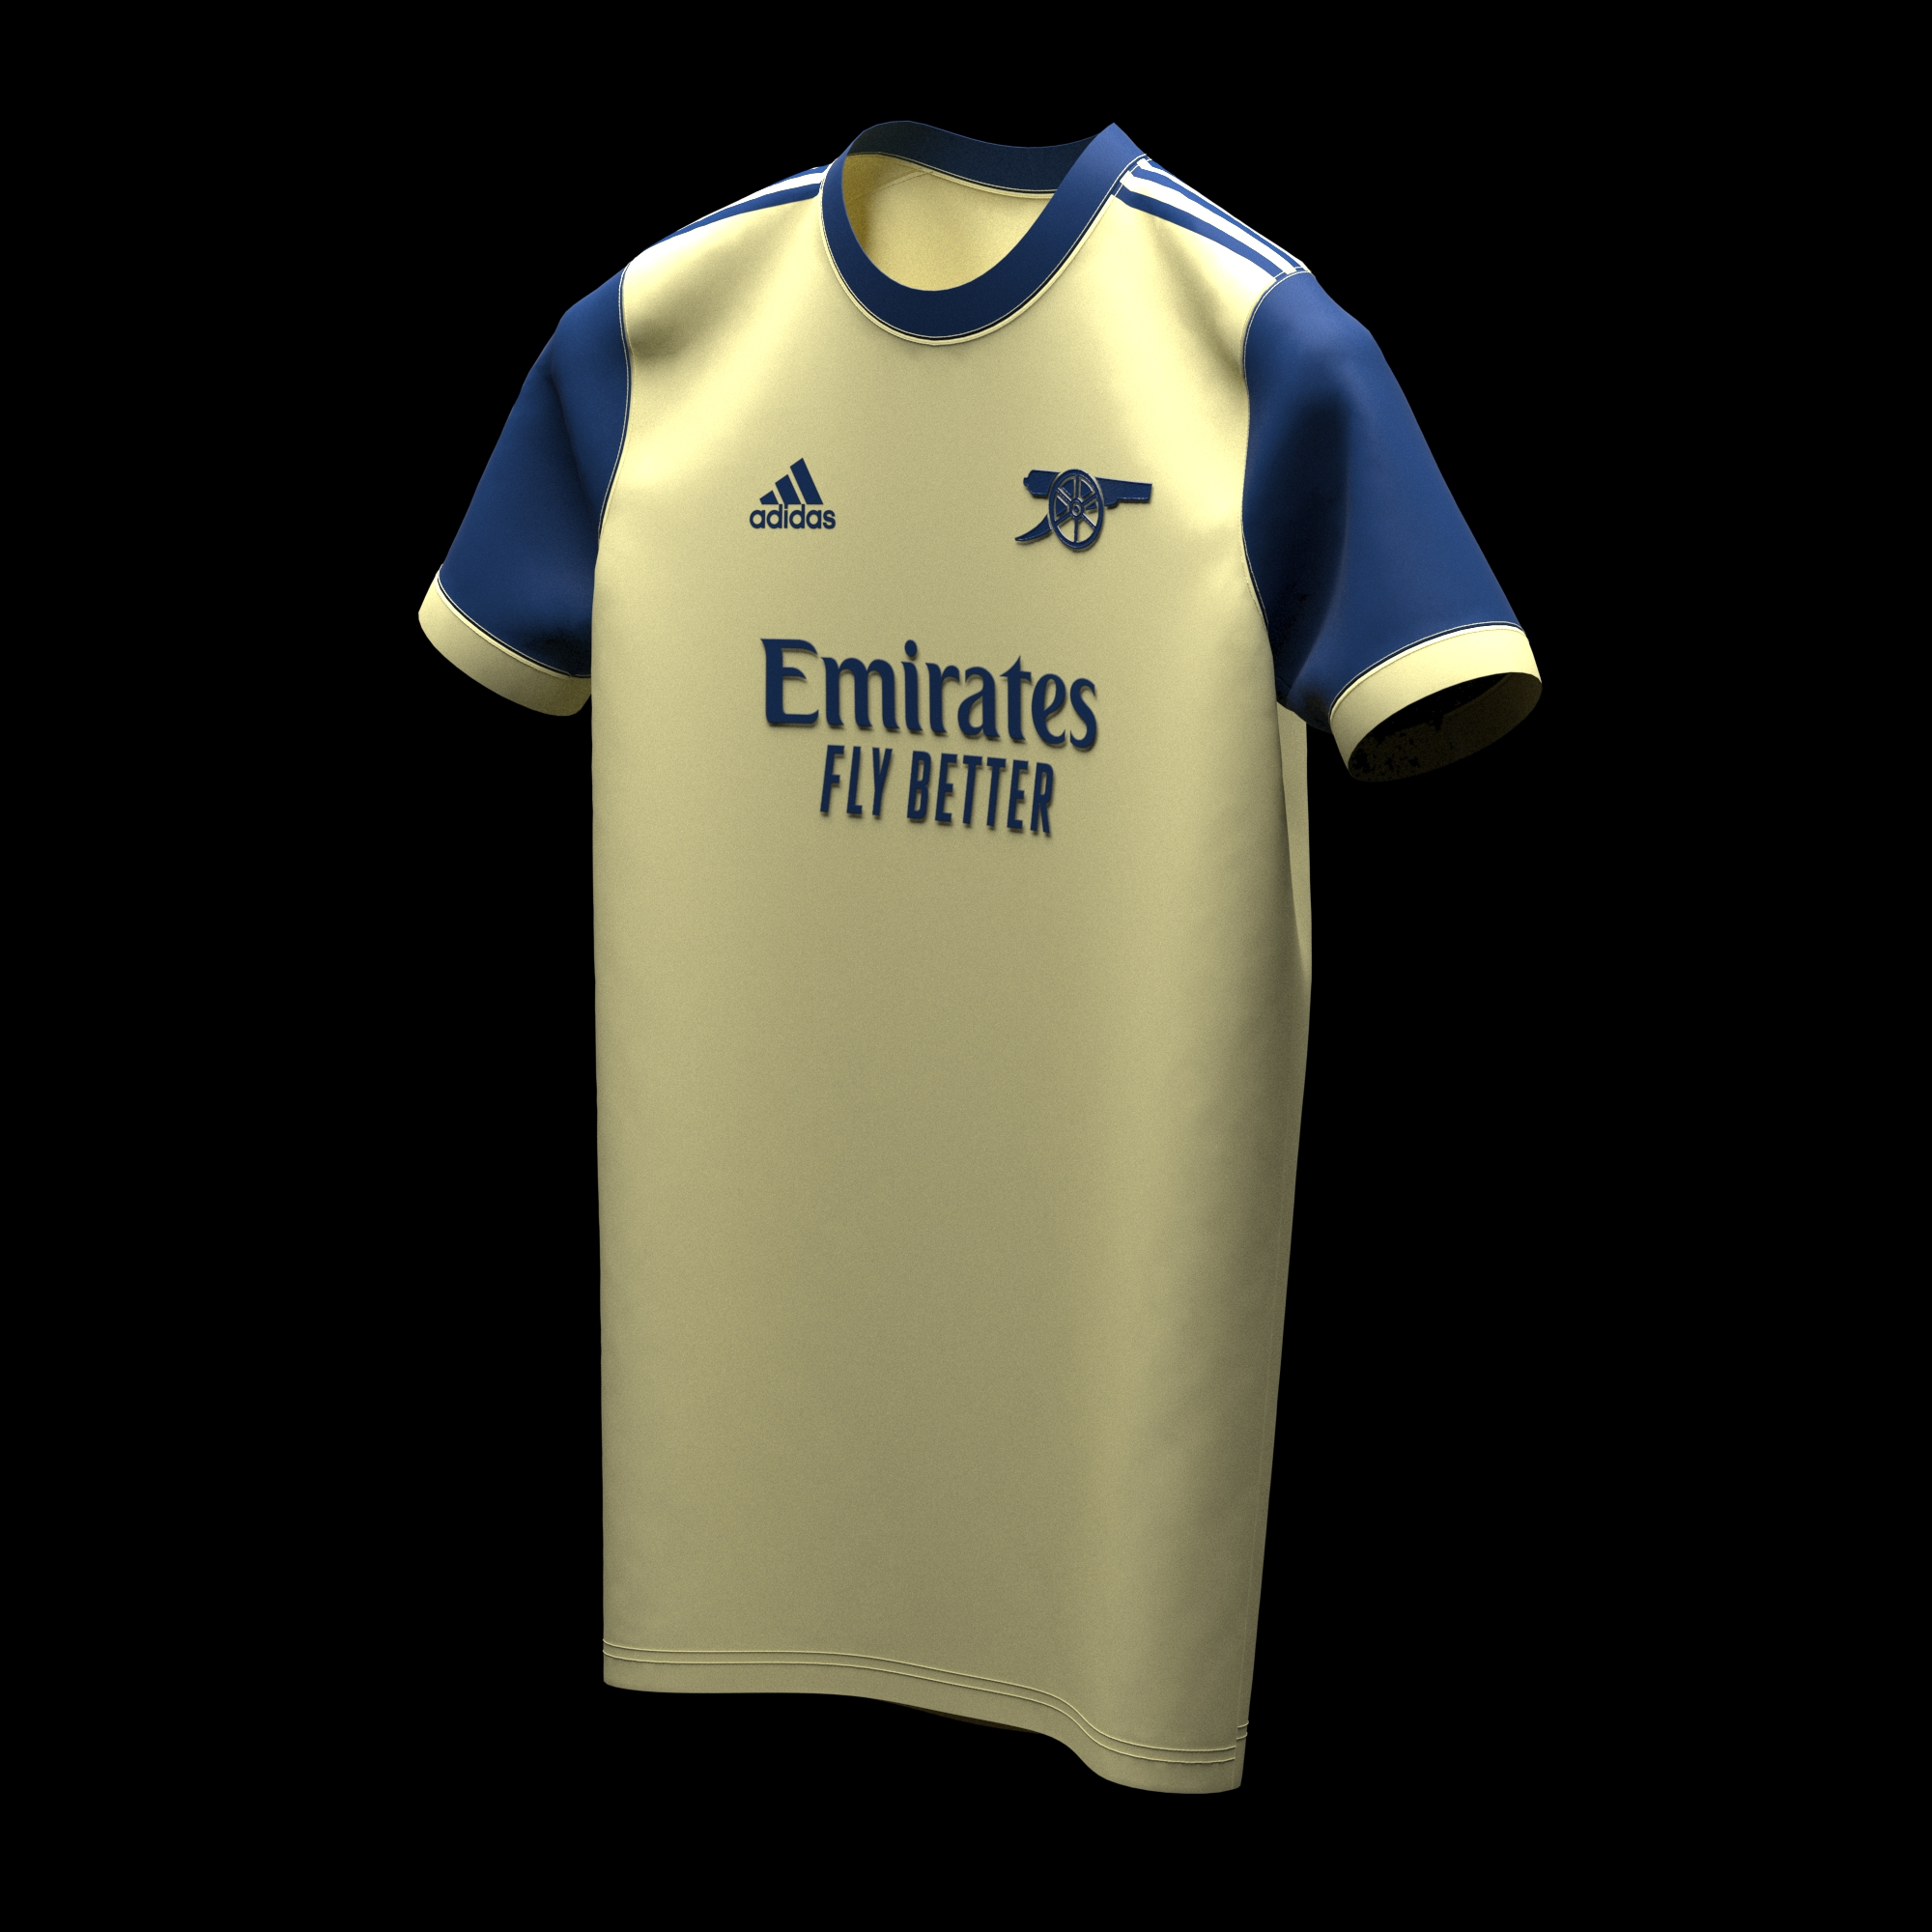 Arsenal 2022 possible maillot exterieur prediction